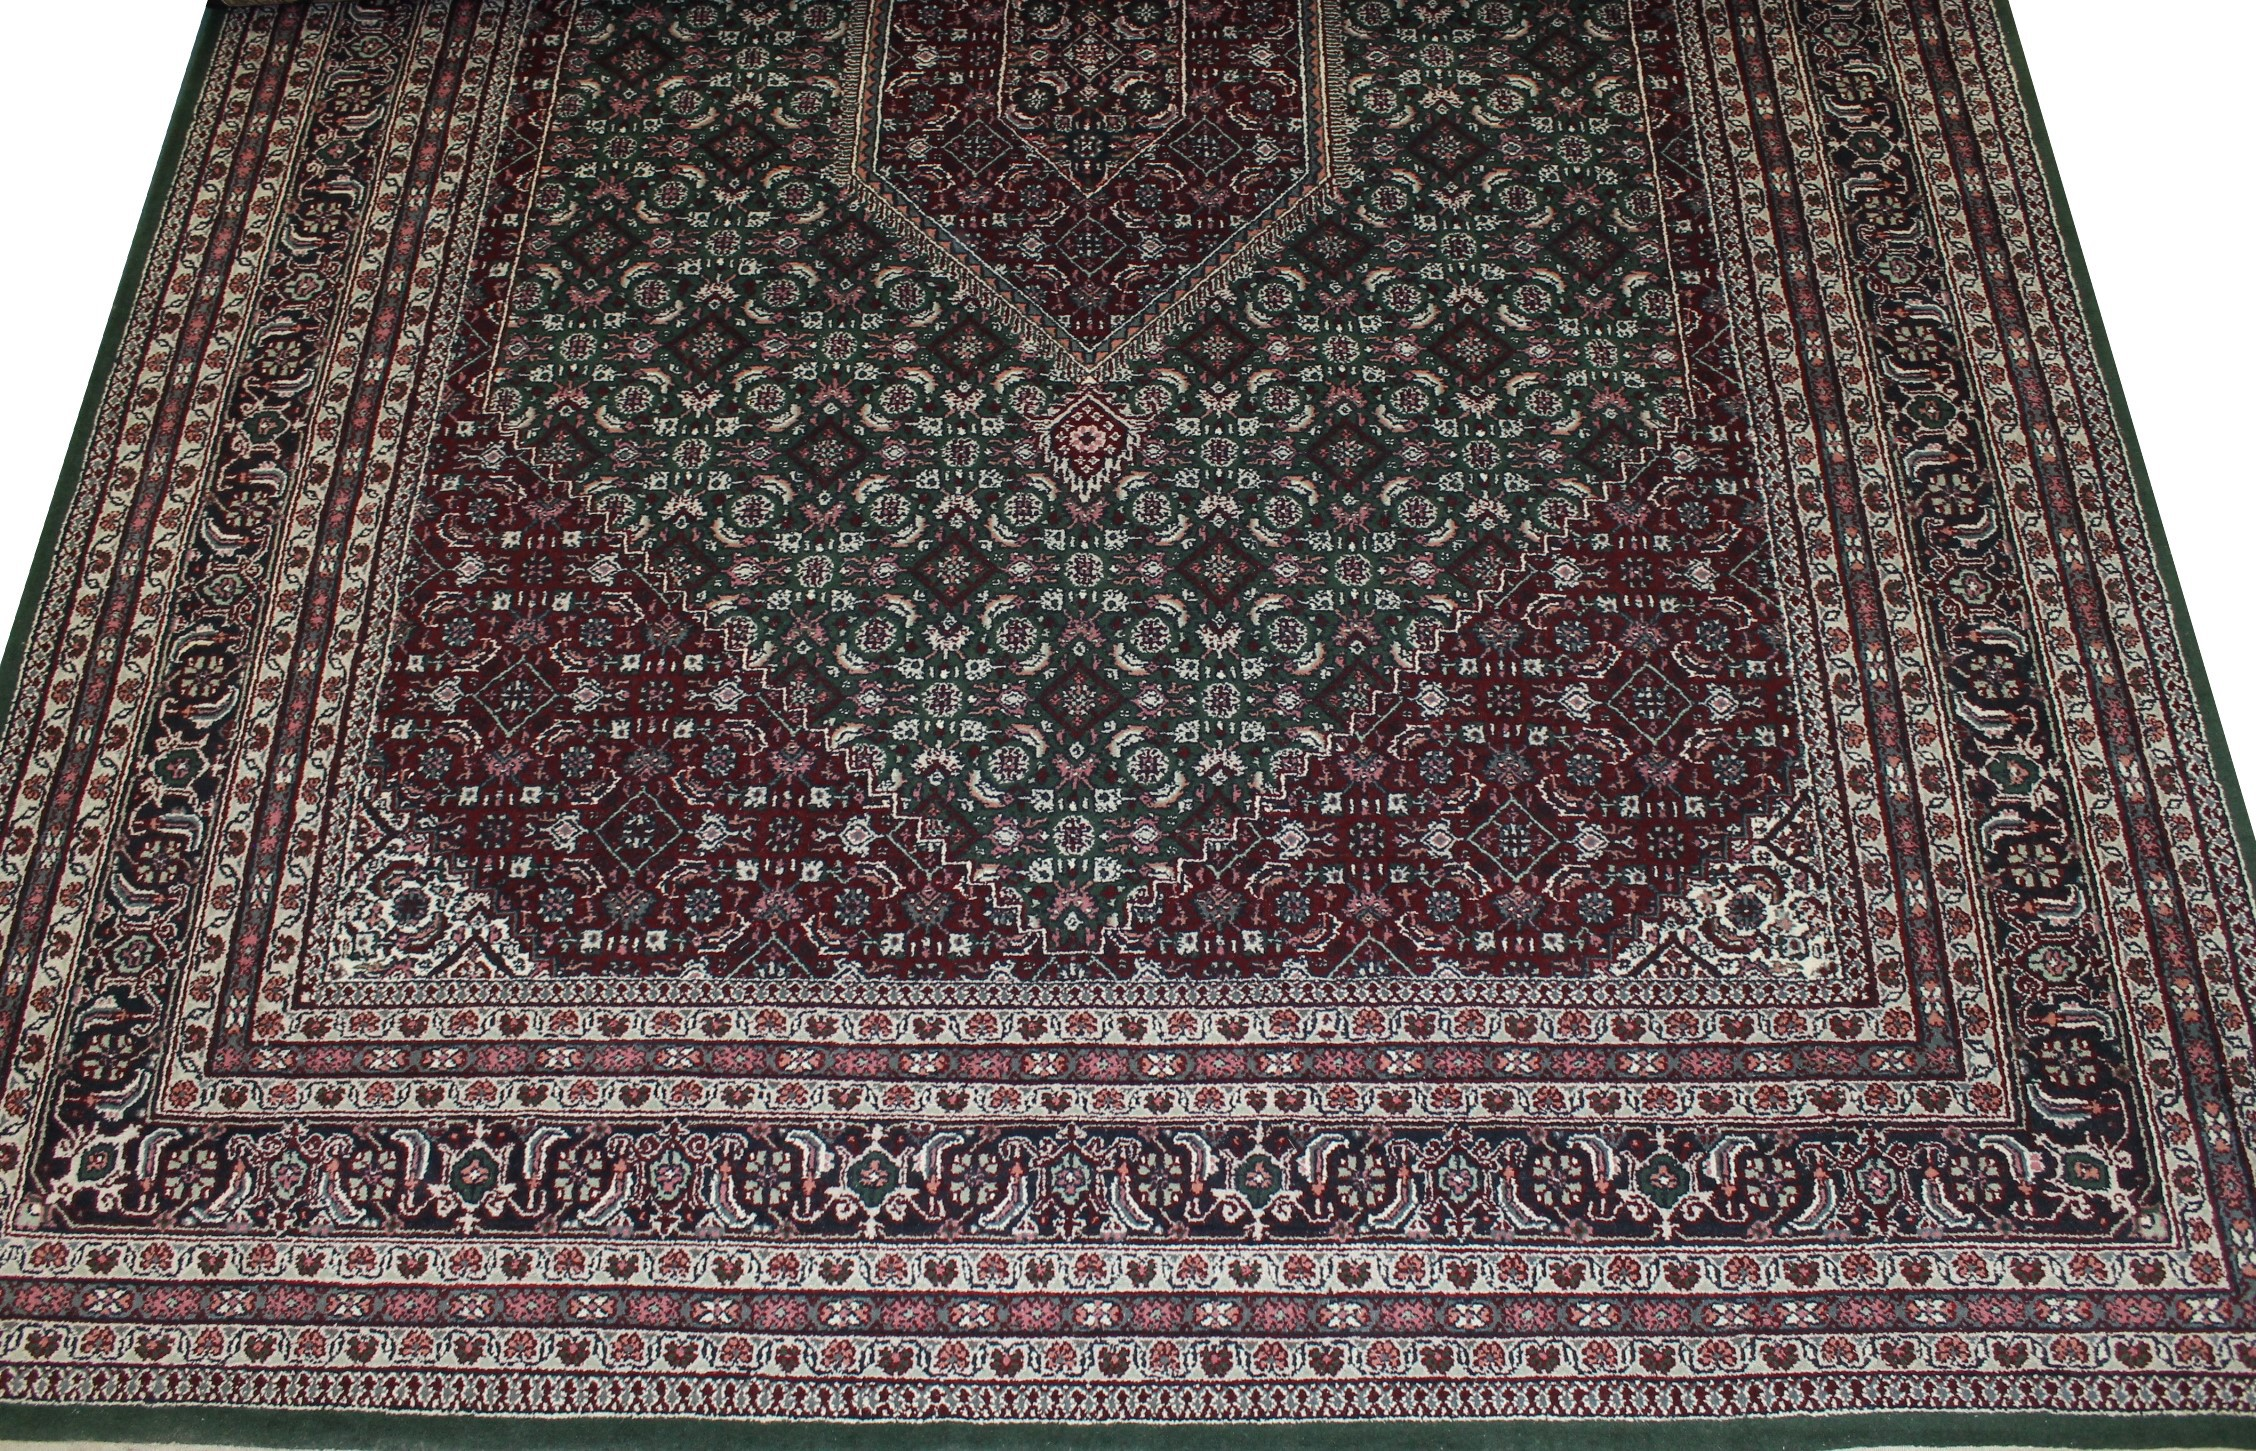 10x14 Geometric Hand Knotted Wool Area Rug - MR0809